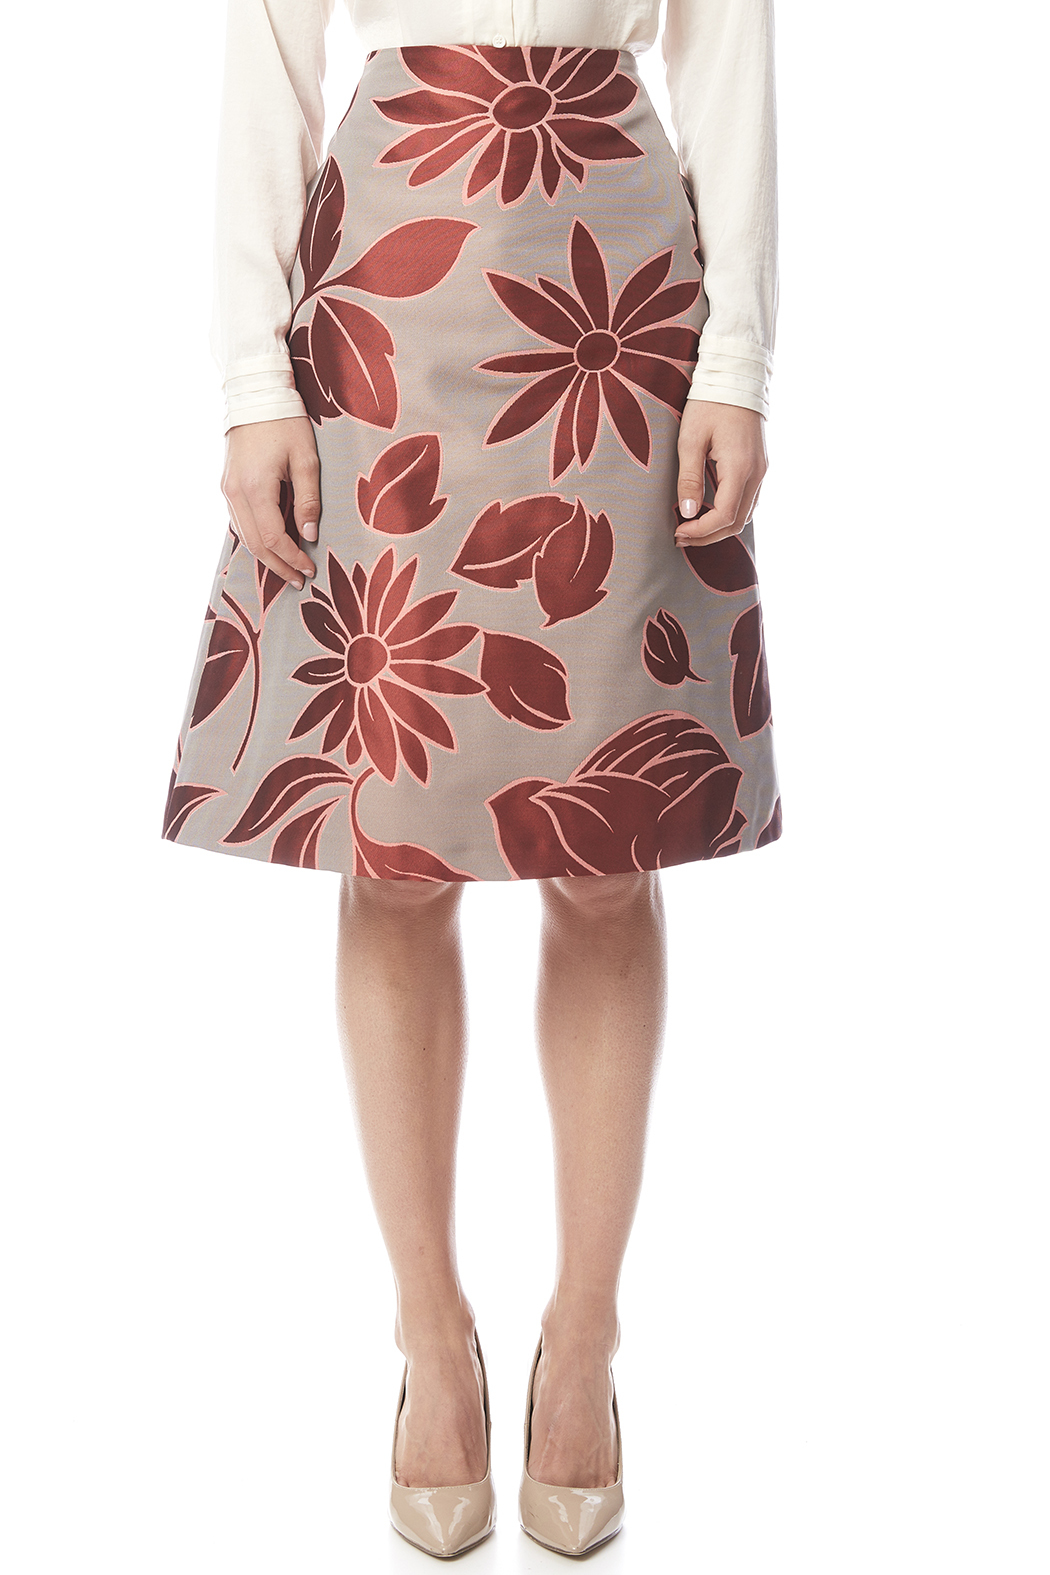 Marli Parmi Floral Brocade Skirt - Side Cropped Image